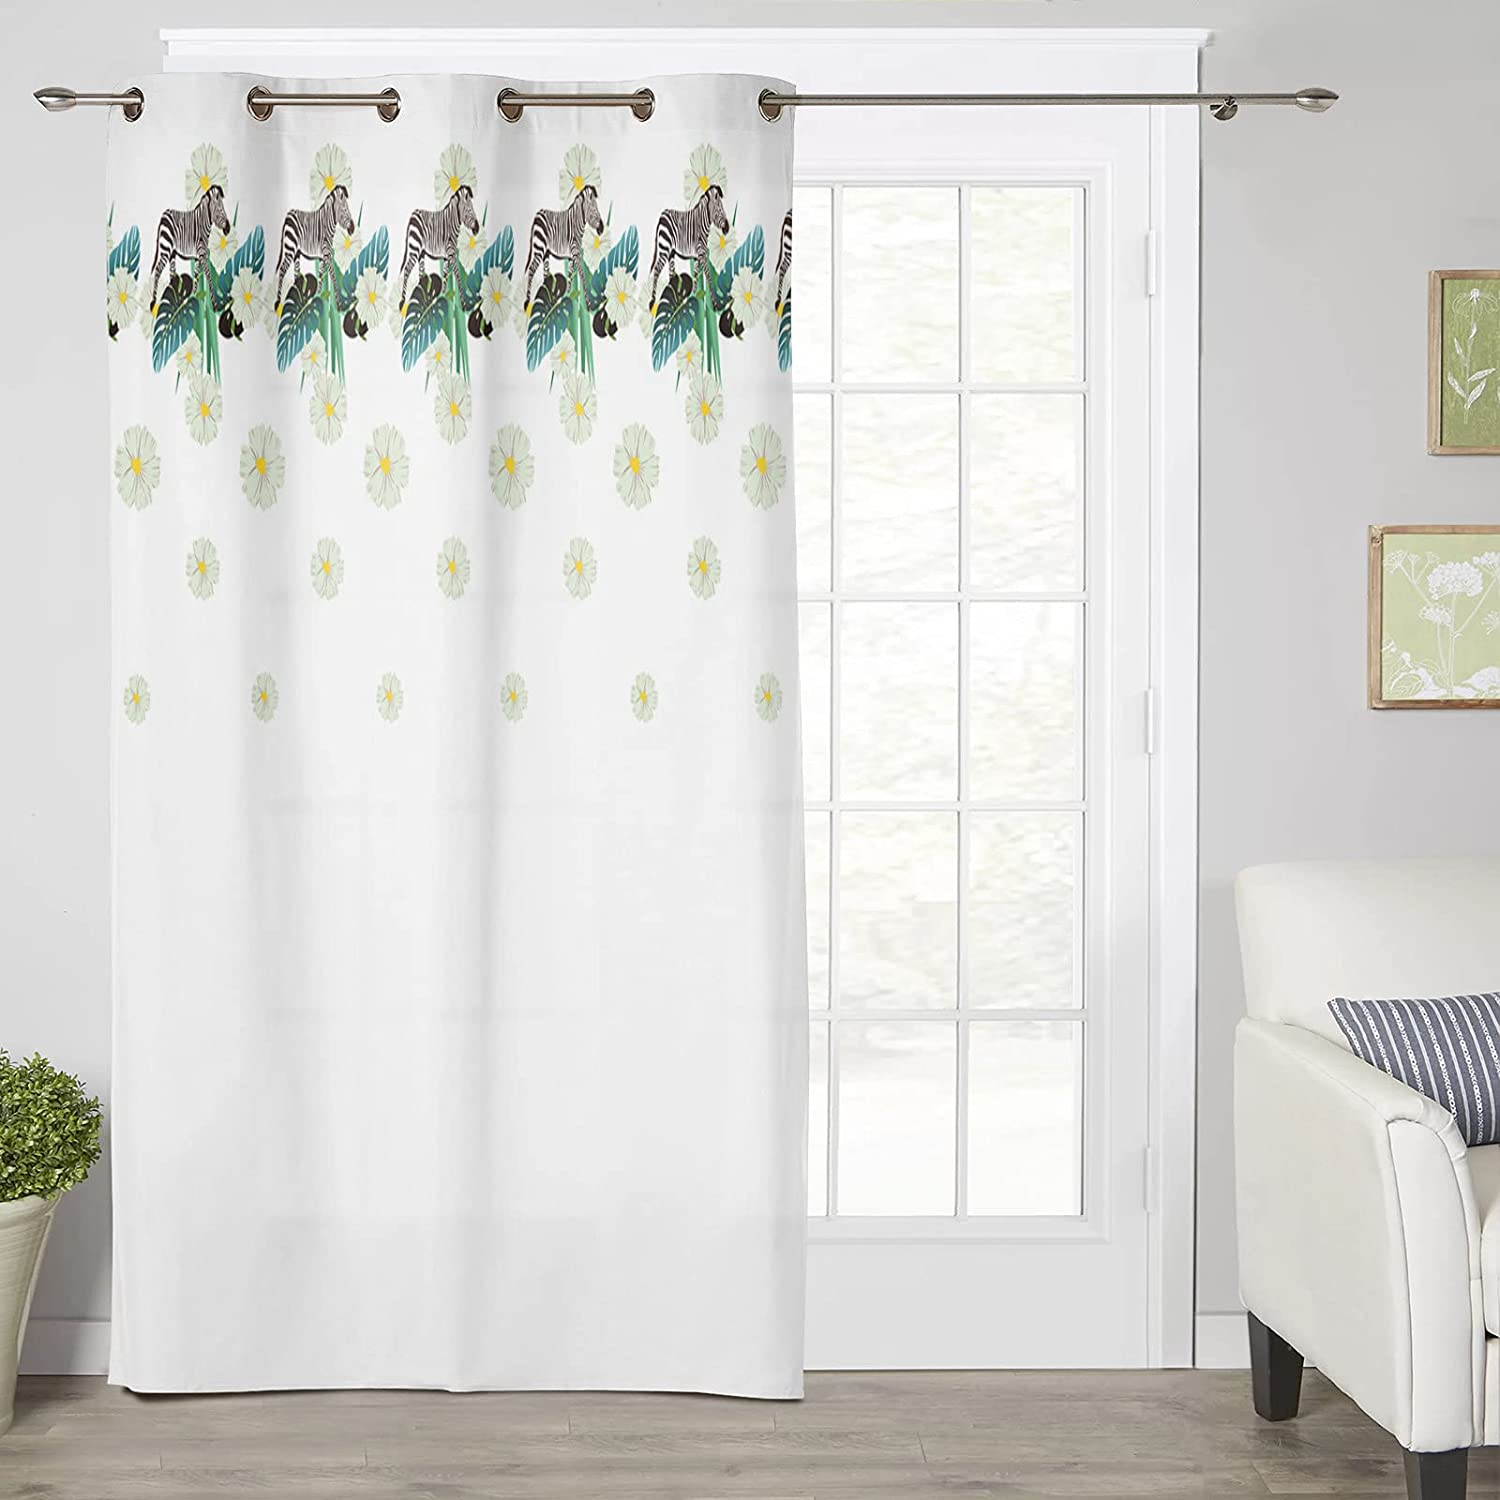 Thermal Insulated Large discharge sale Window Curtain Tropical Pl Max 59% OFF Animal Flower Zebra